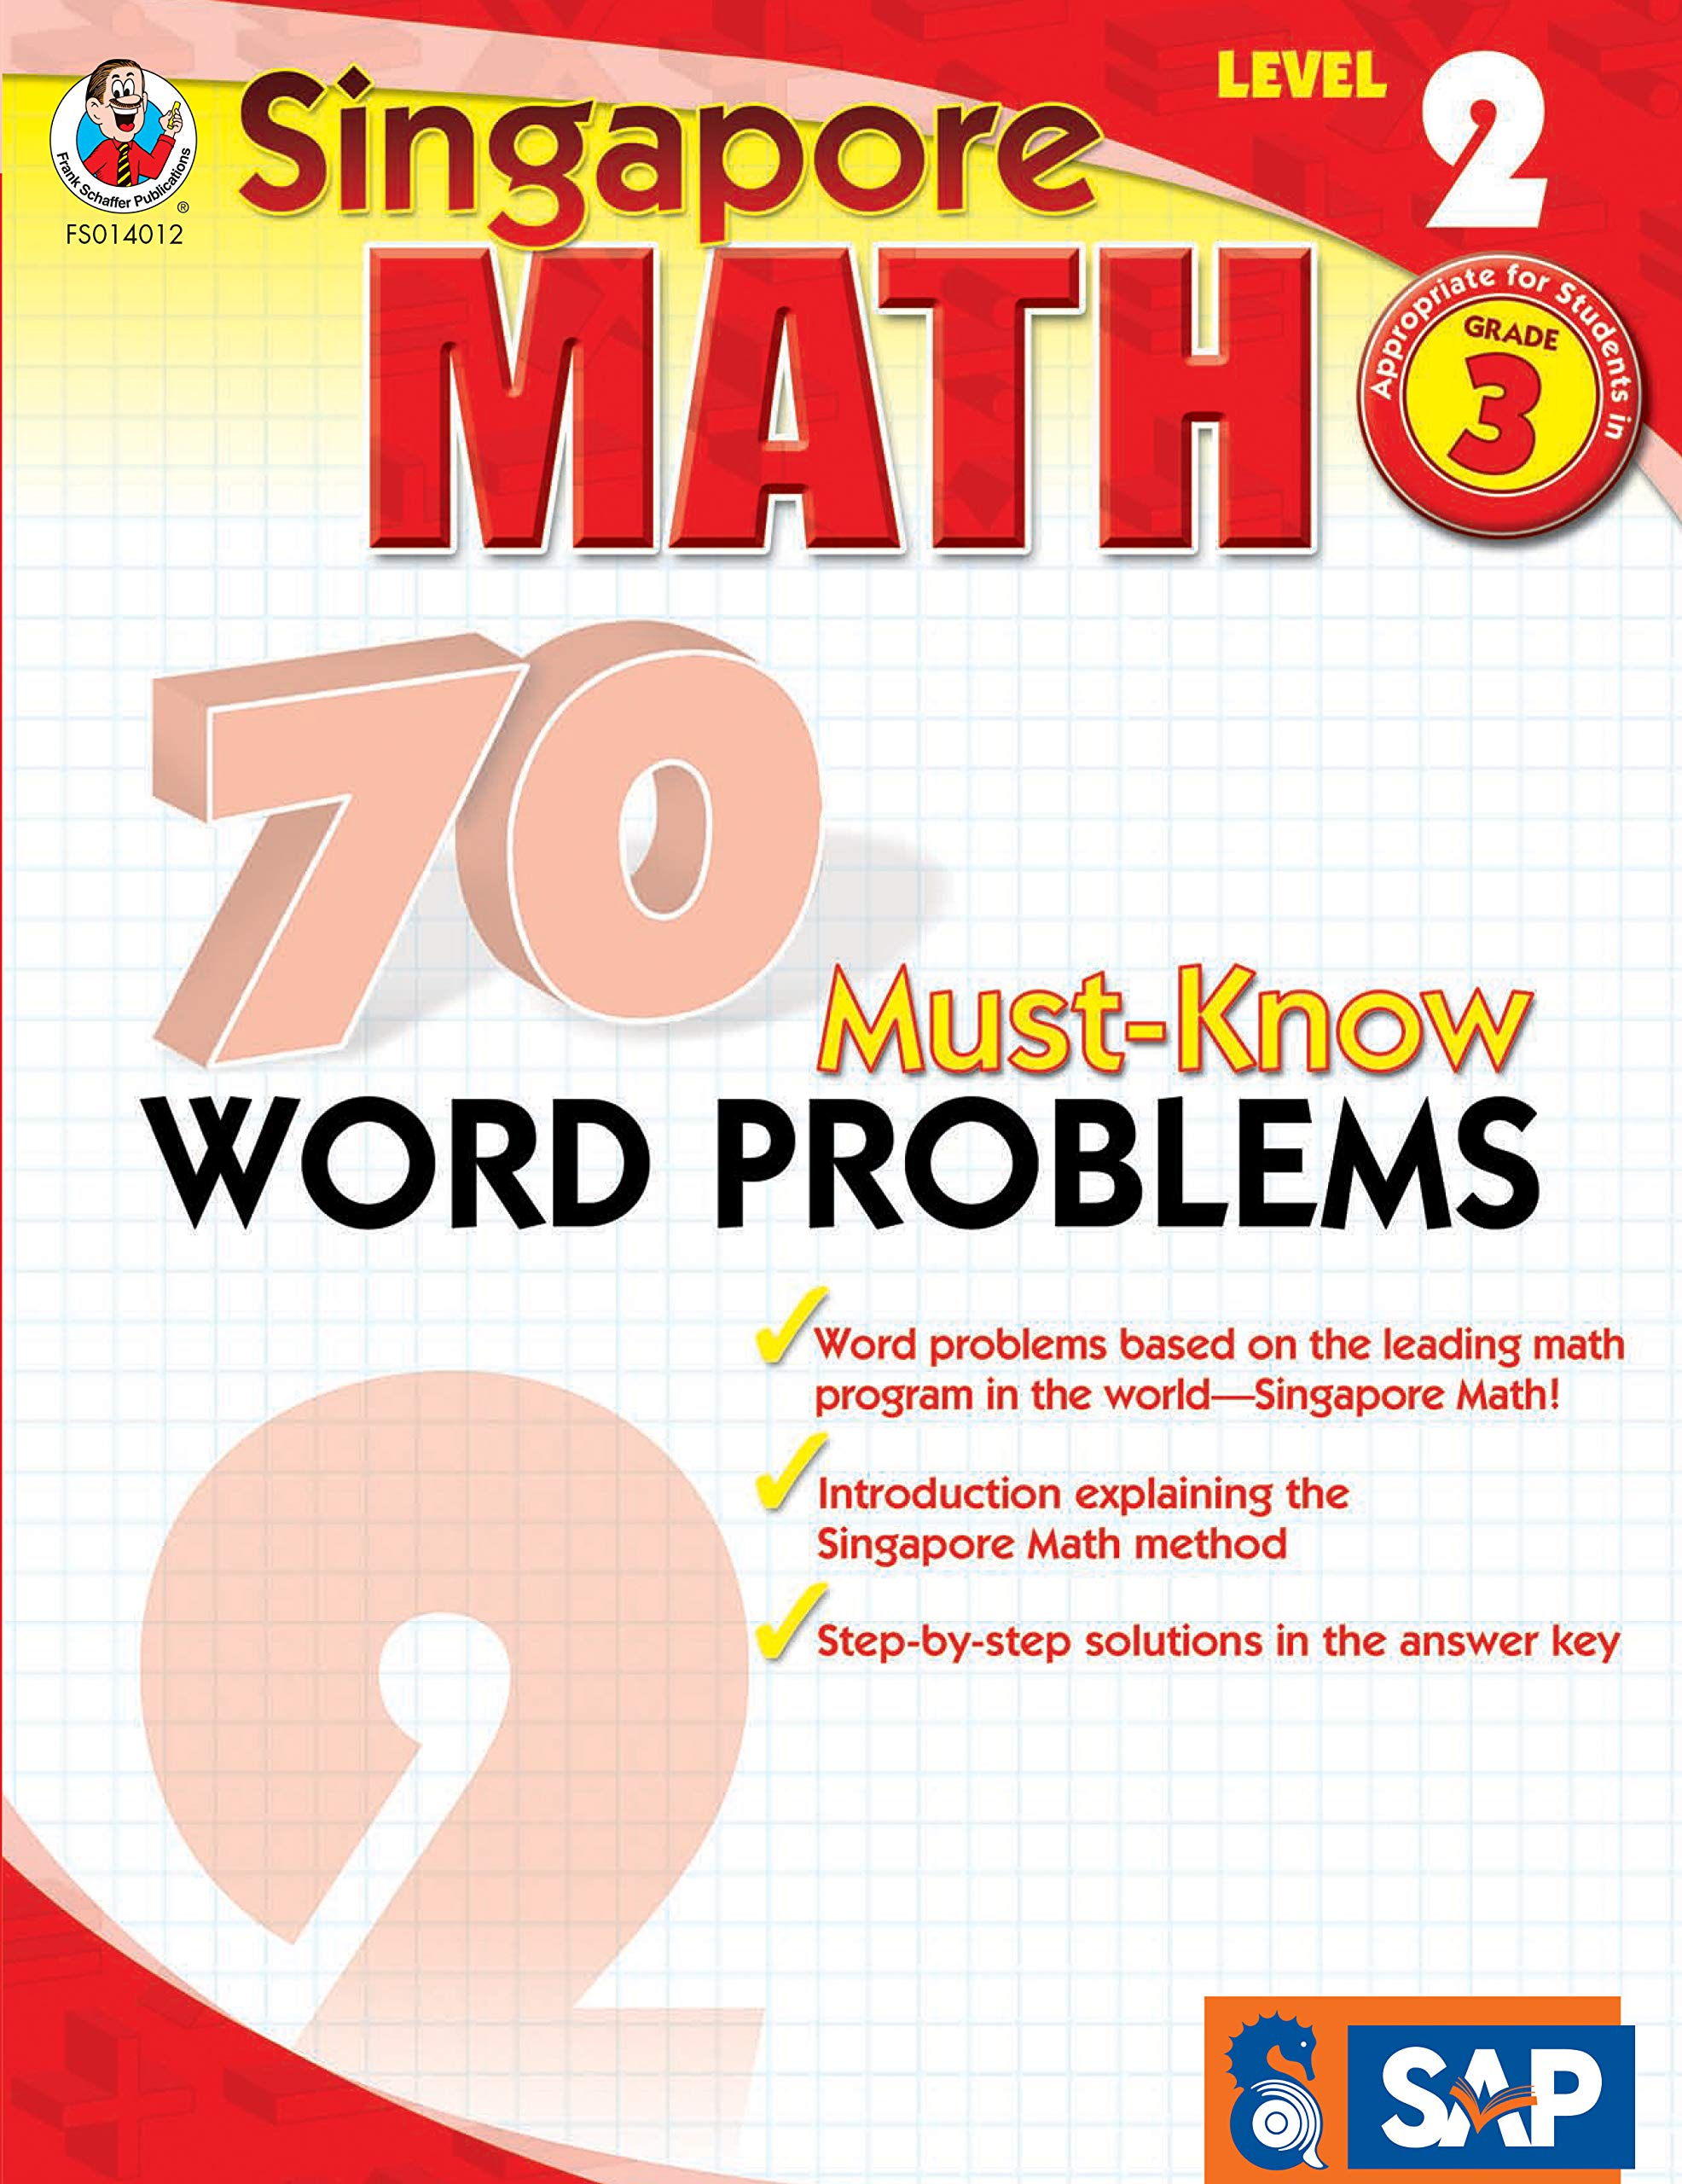 Amazon.com: Singapore Math – 70 Must-Know Word Problems ... on tangent of a circle, polar equation circle, function of a circle, formula for a circle, unit circle, find center and radius of circle, parametric equation for circle, center of a circle, power of a circle, red circle, area of a circle, expanded form of a circle, point symmetry of a circle, circumference of a circle, volume of a circle, perimeter of a circle, arc of a circle, denominator of a circle, coordinate graph of a circle, radius of a circle,